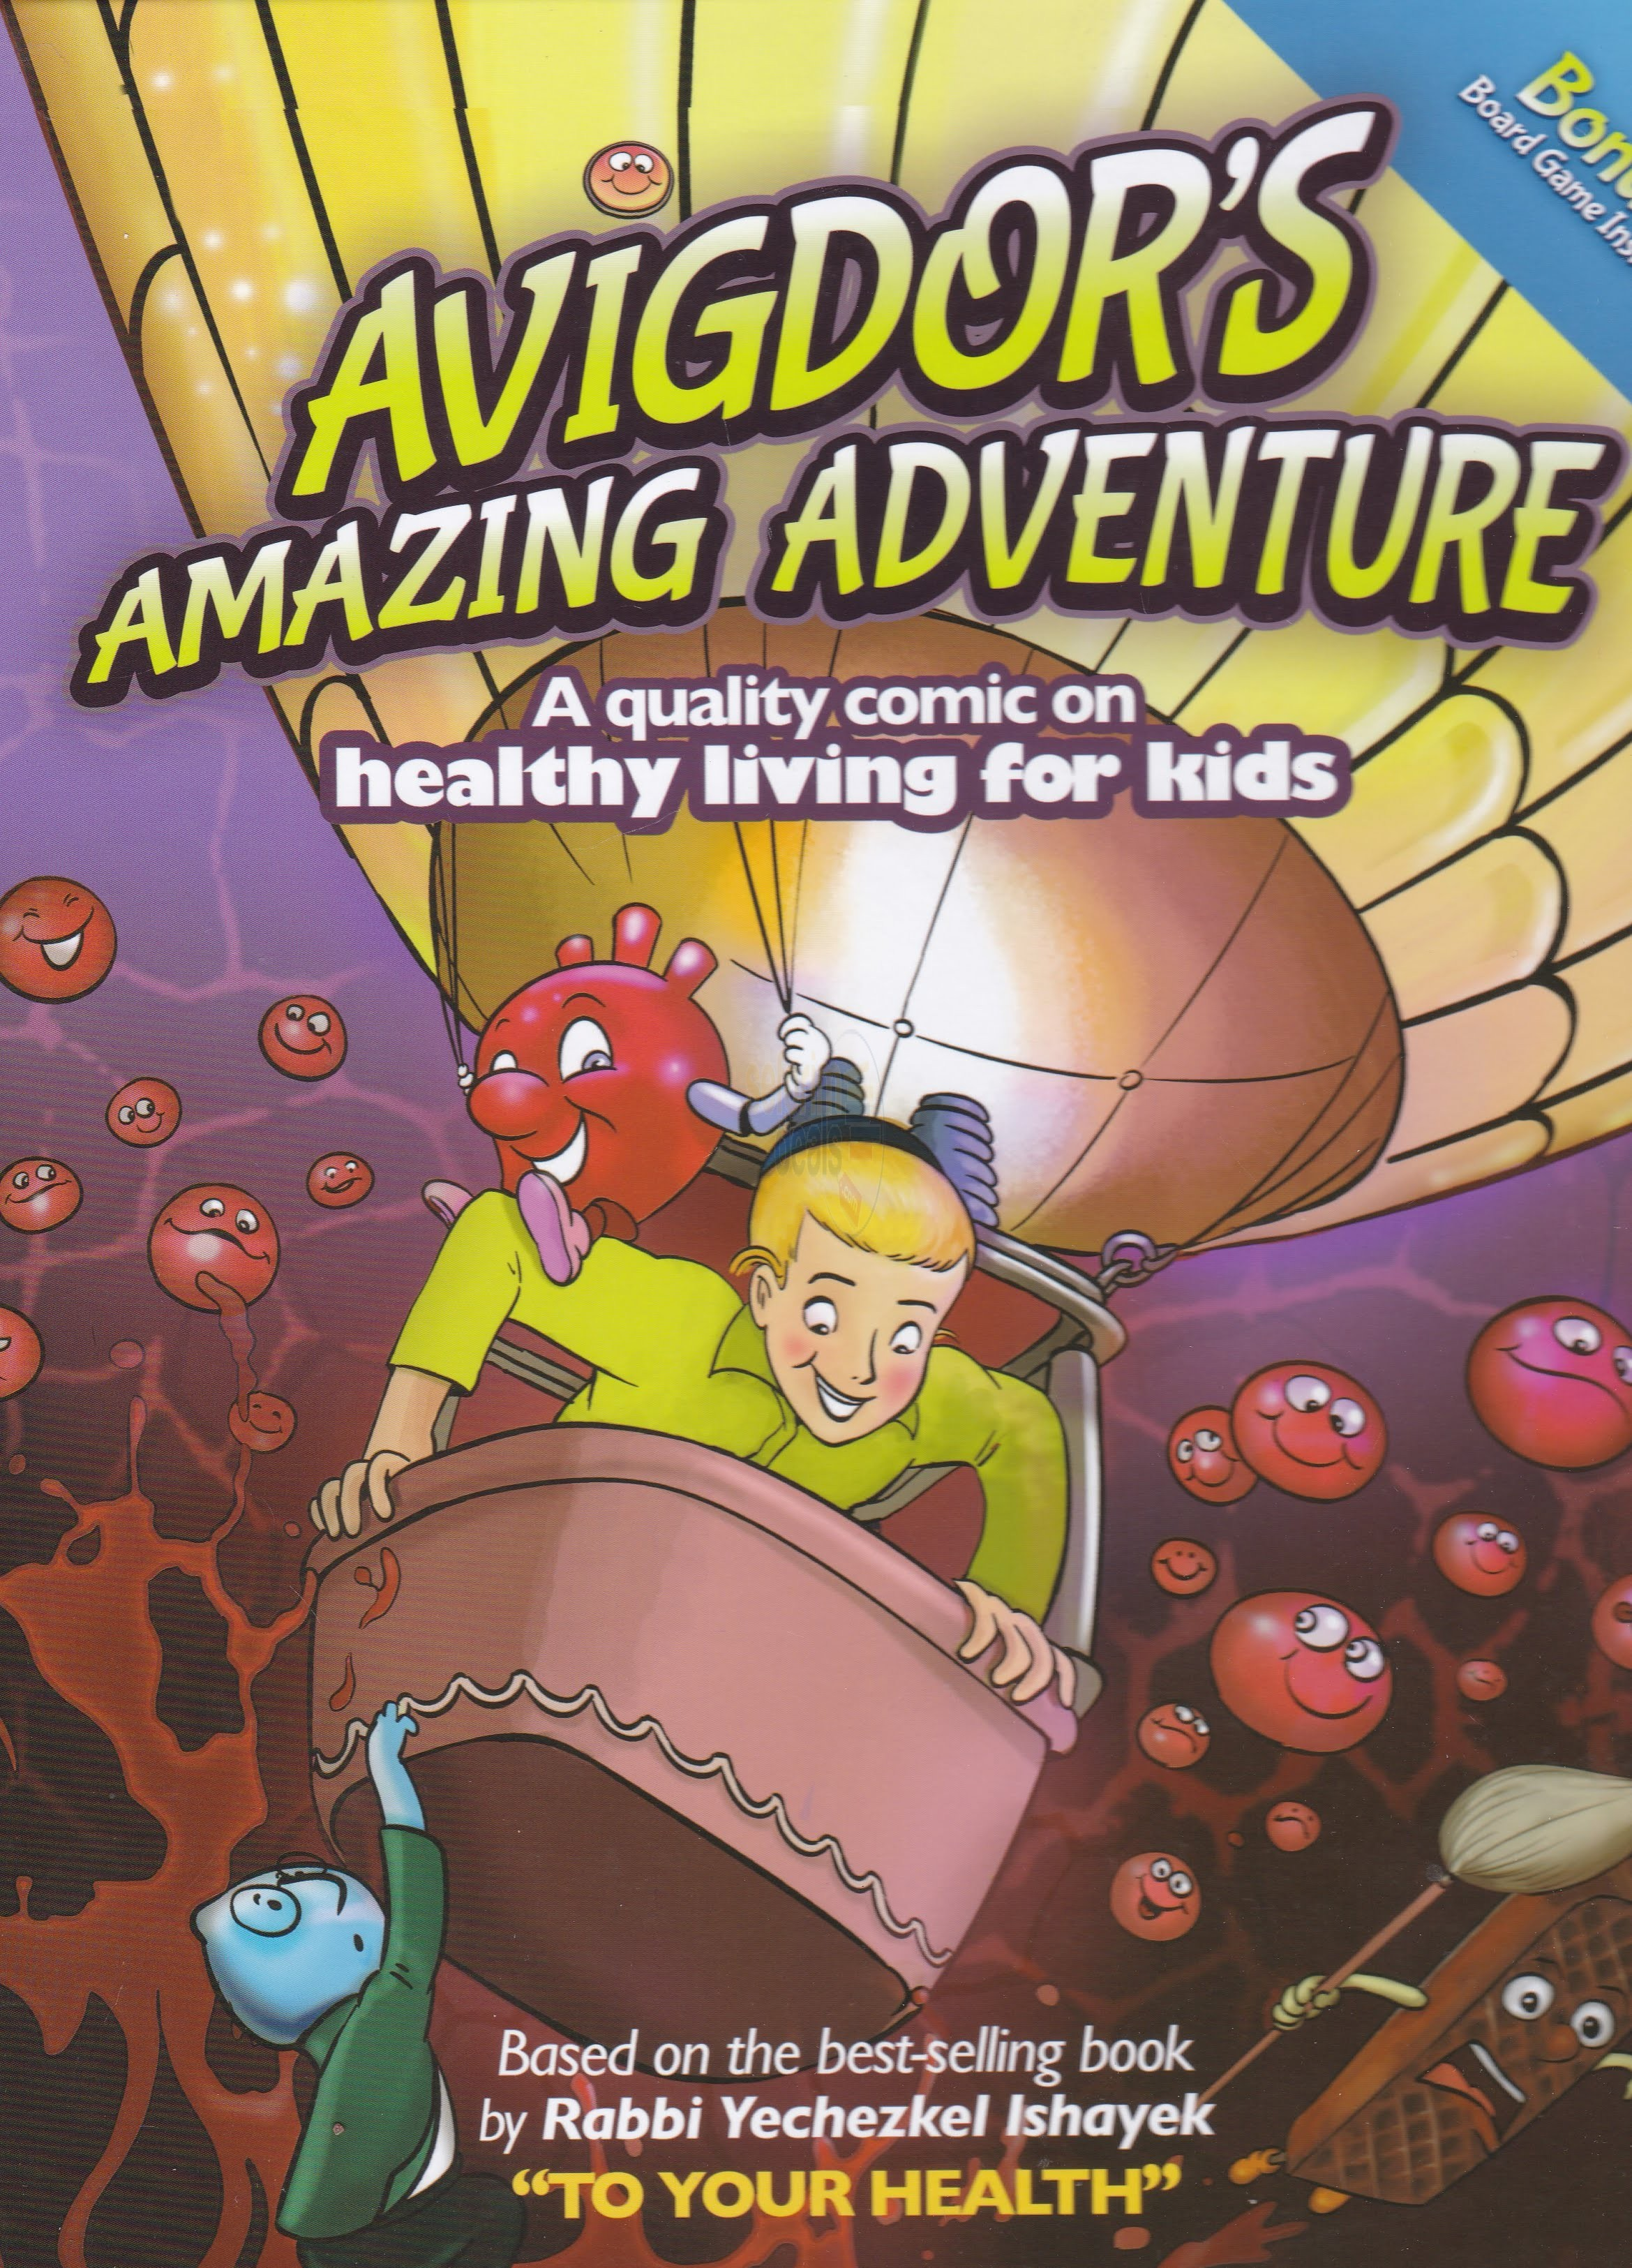 Avigdor's Amazing Adventure - Comics